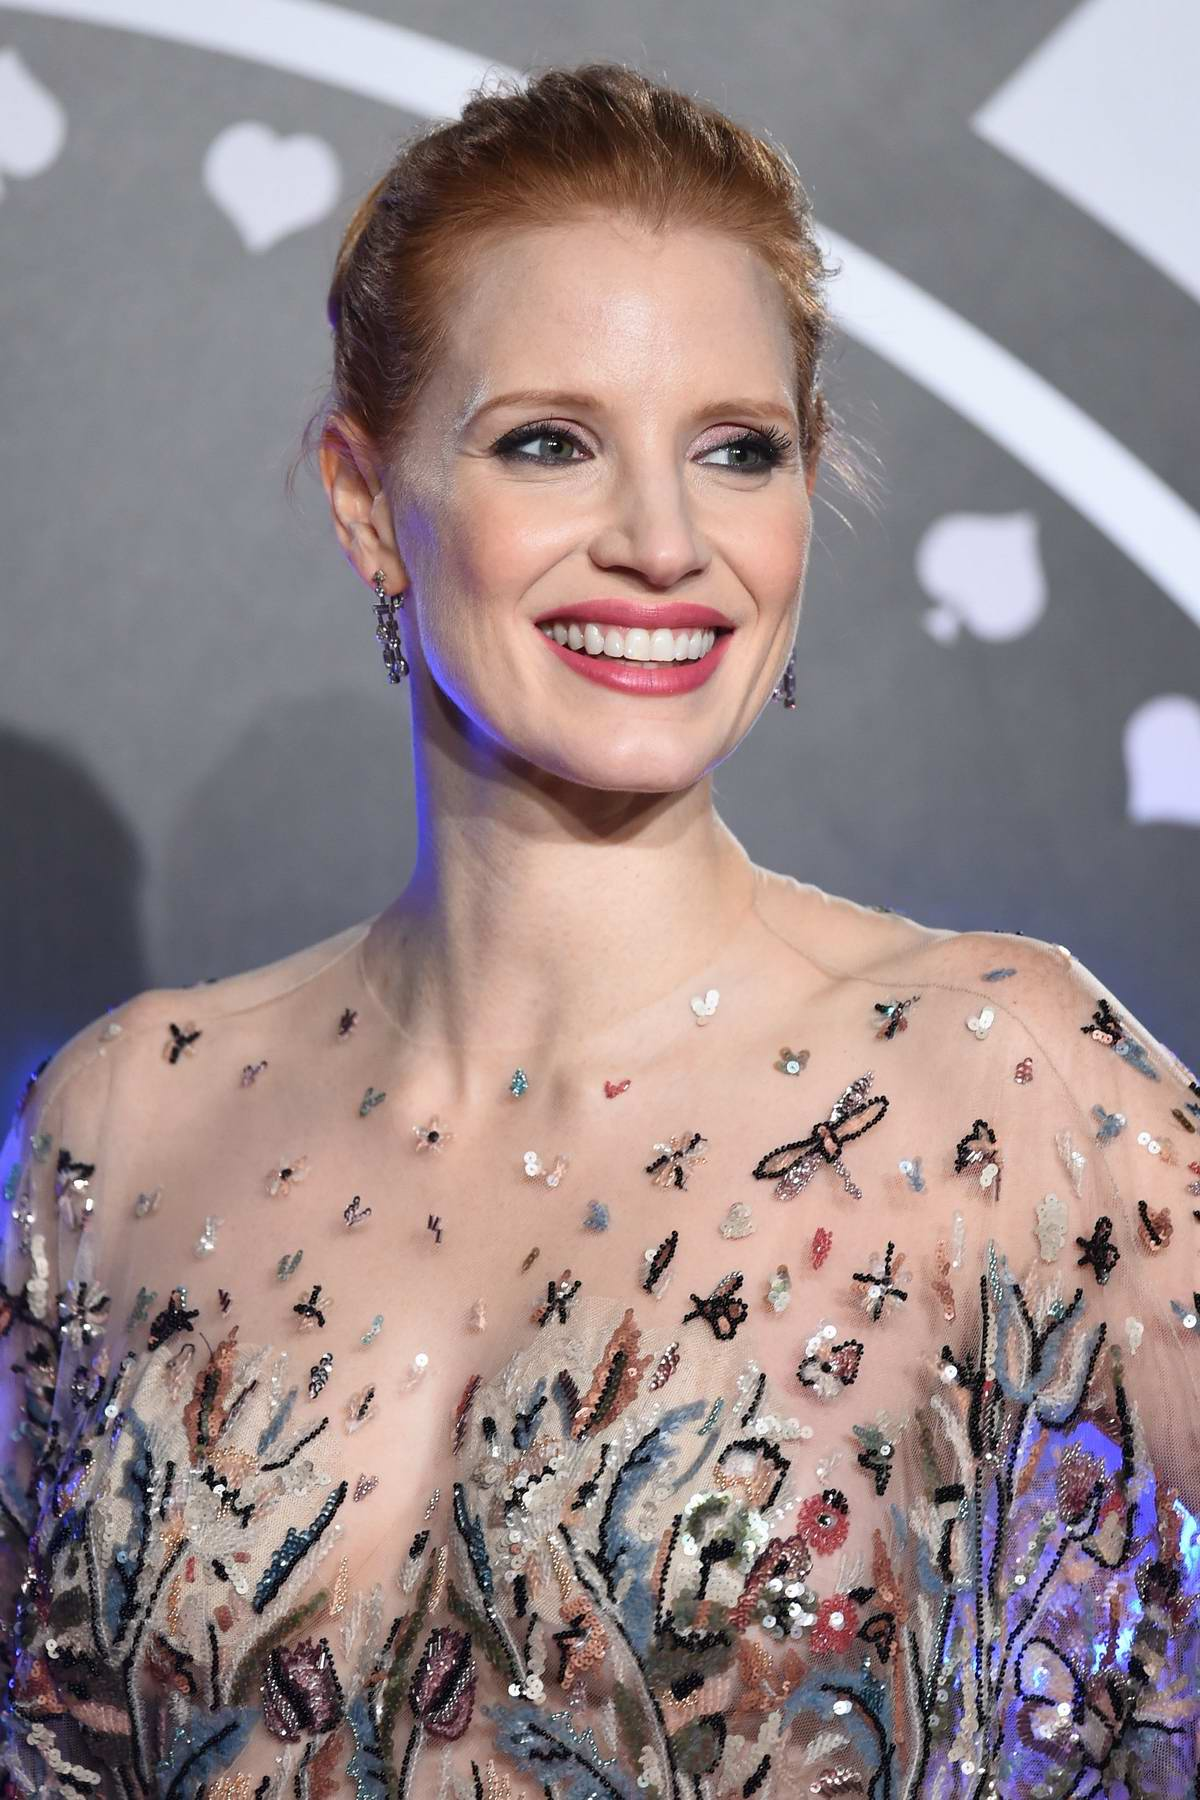 Jessica Chastain at the premiere of Molly's Game in London